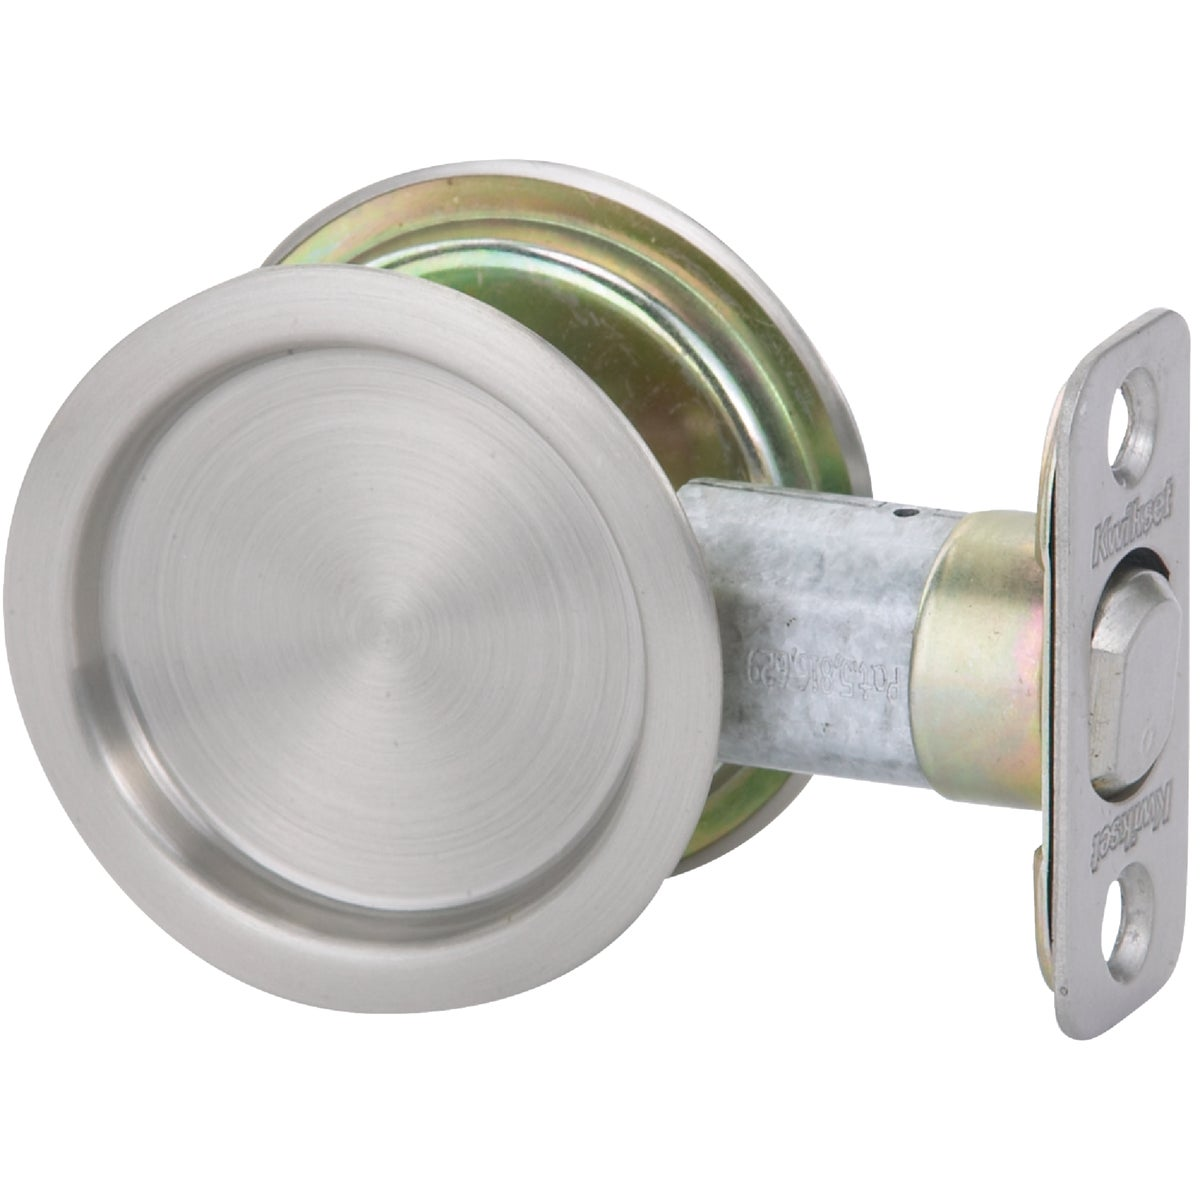 SN PASS POCKET DOOR PULL - 334 15 by Kwikset